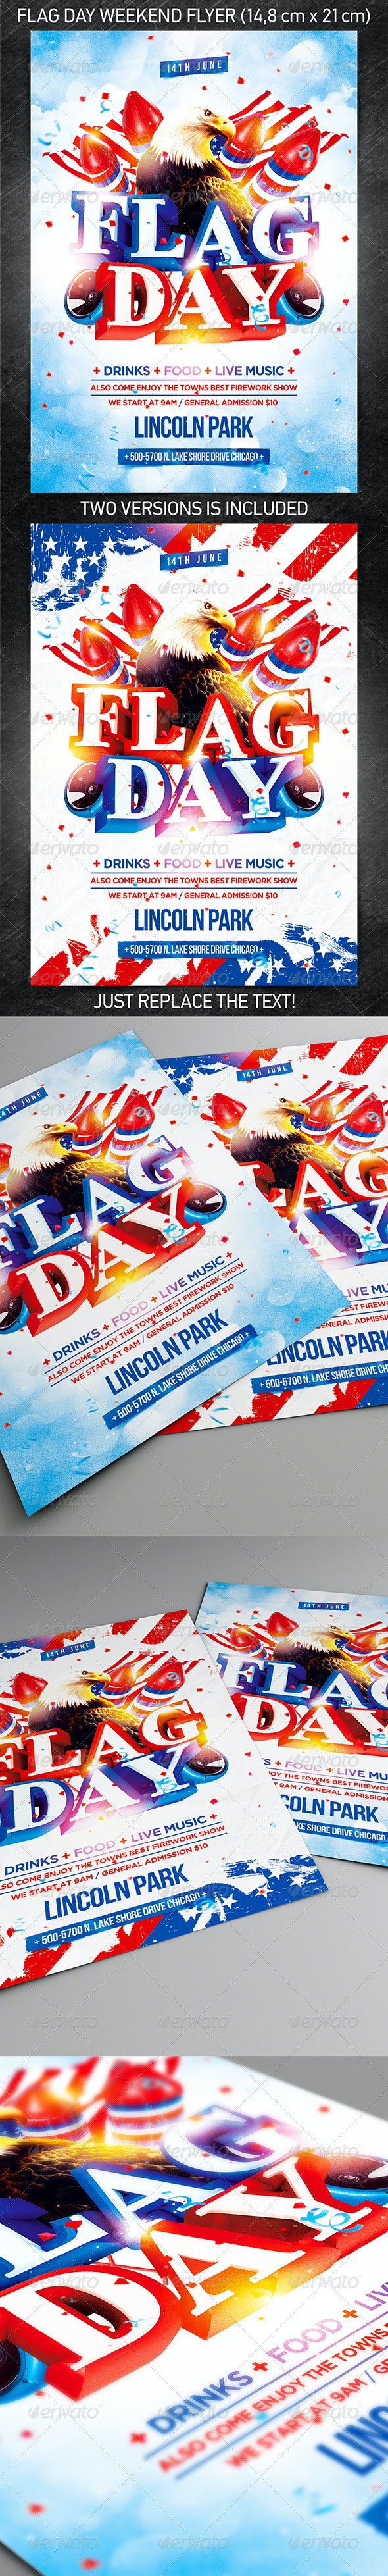 Flag Day Weekend Party Flyer - Holidays Events